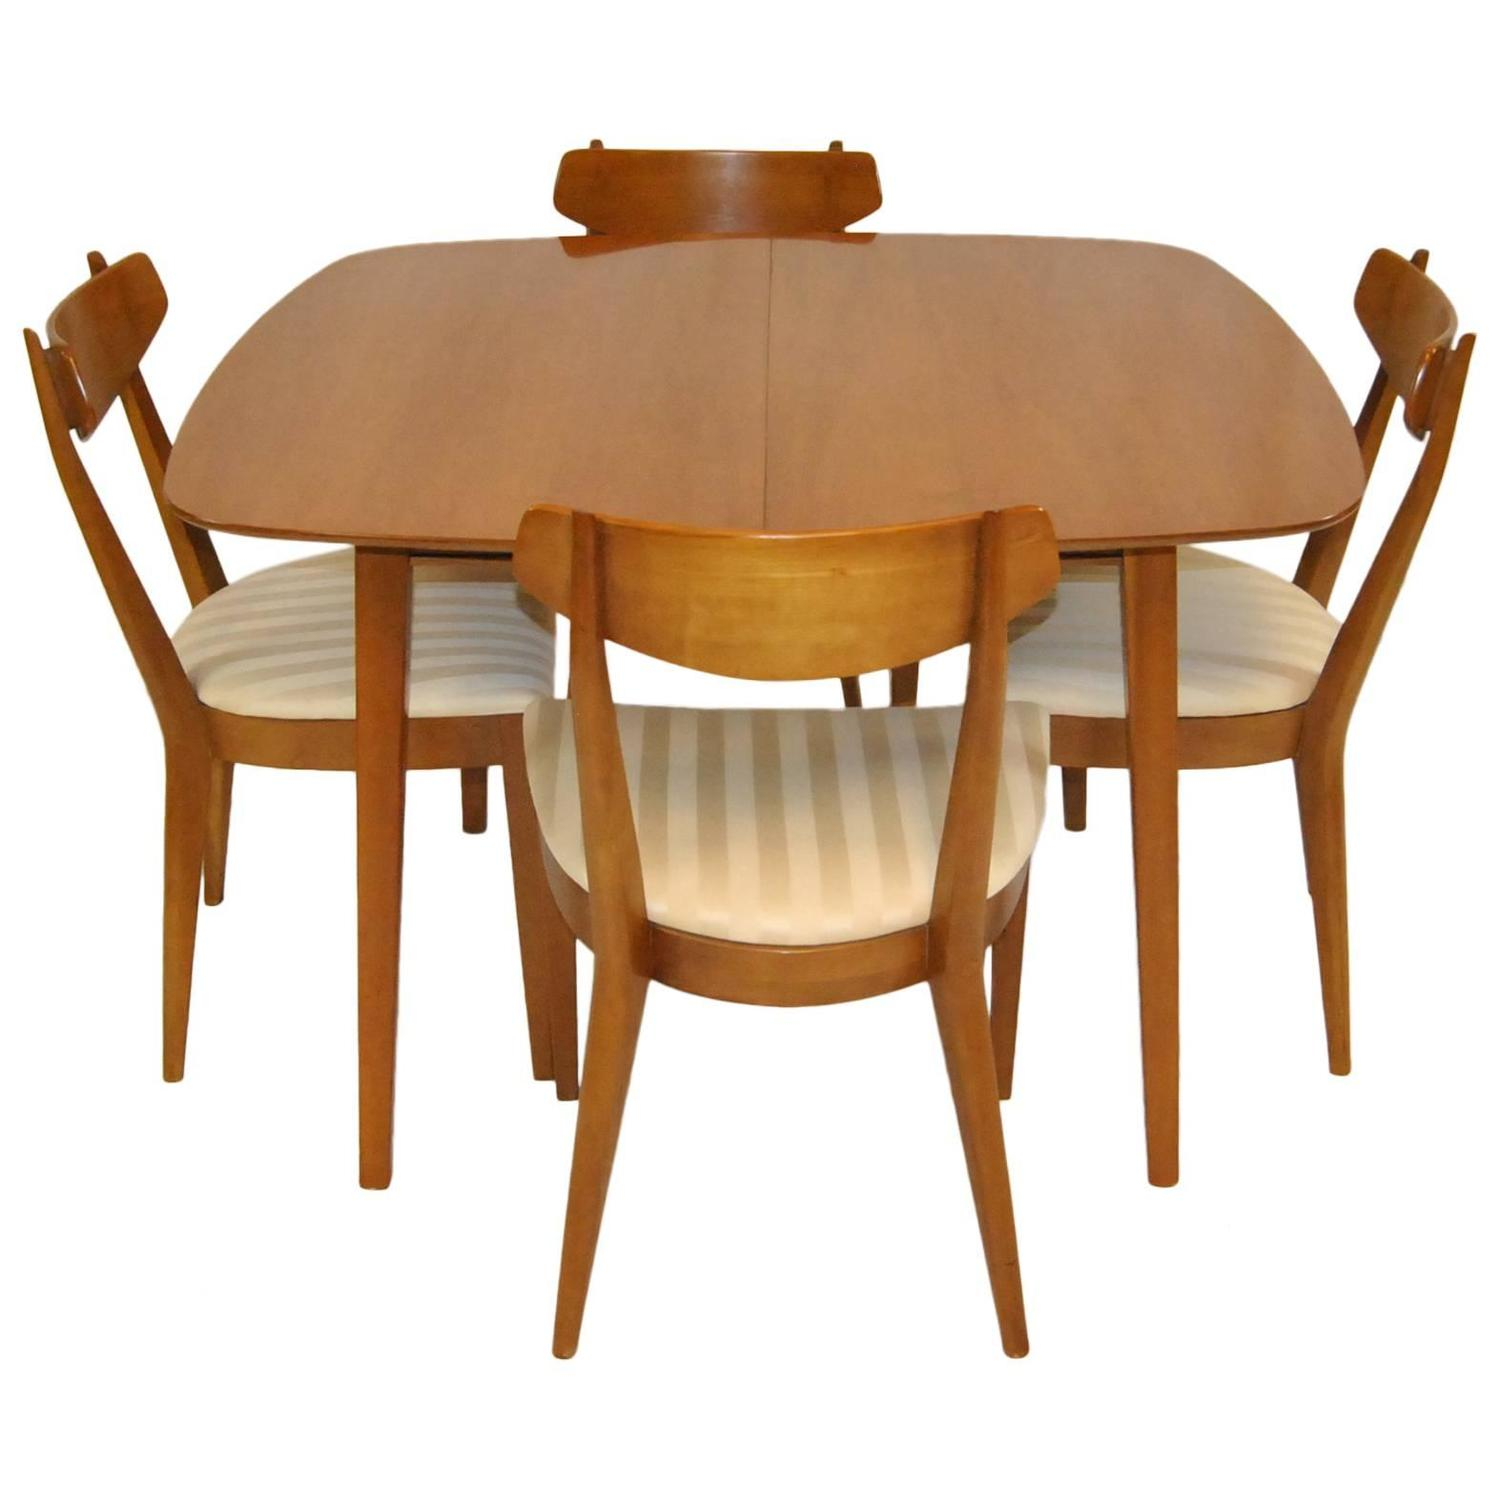 Mid Century Modern Dining Set By Kipp Stewart For Drexel Sun Coast Collection For Sale At 1stdibs